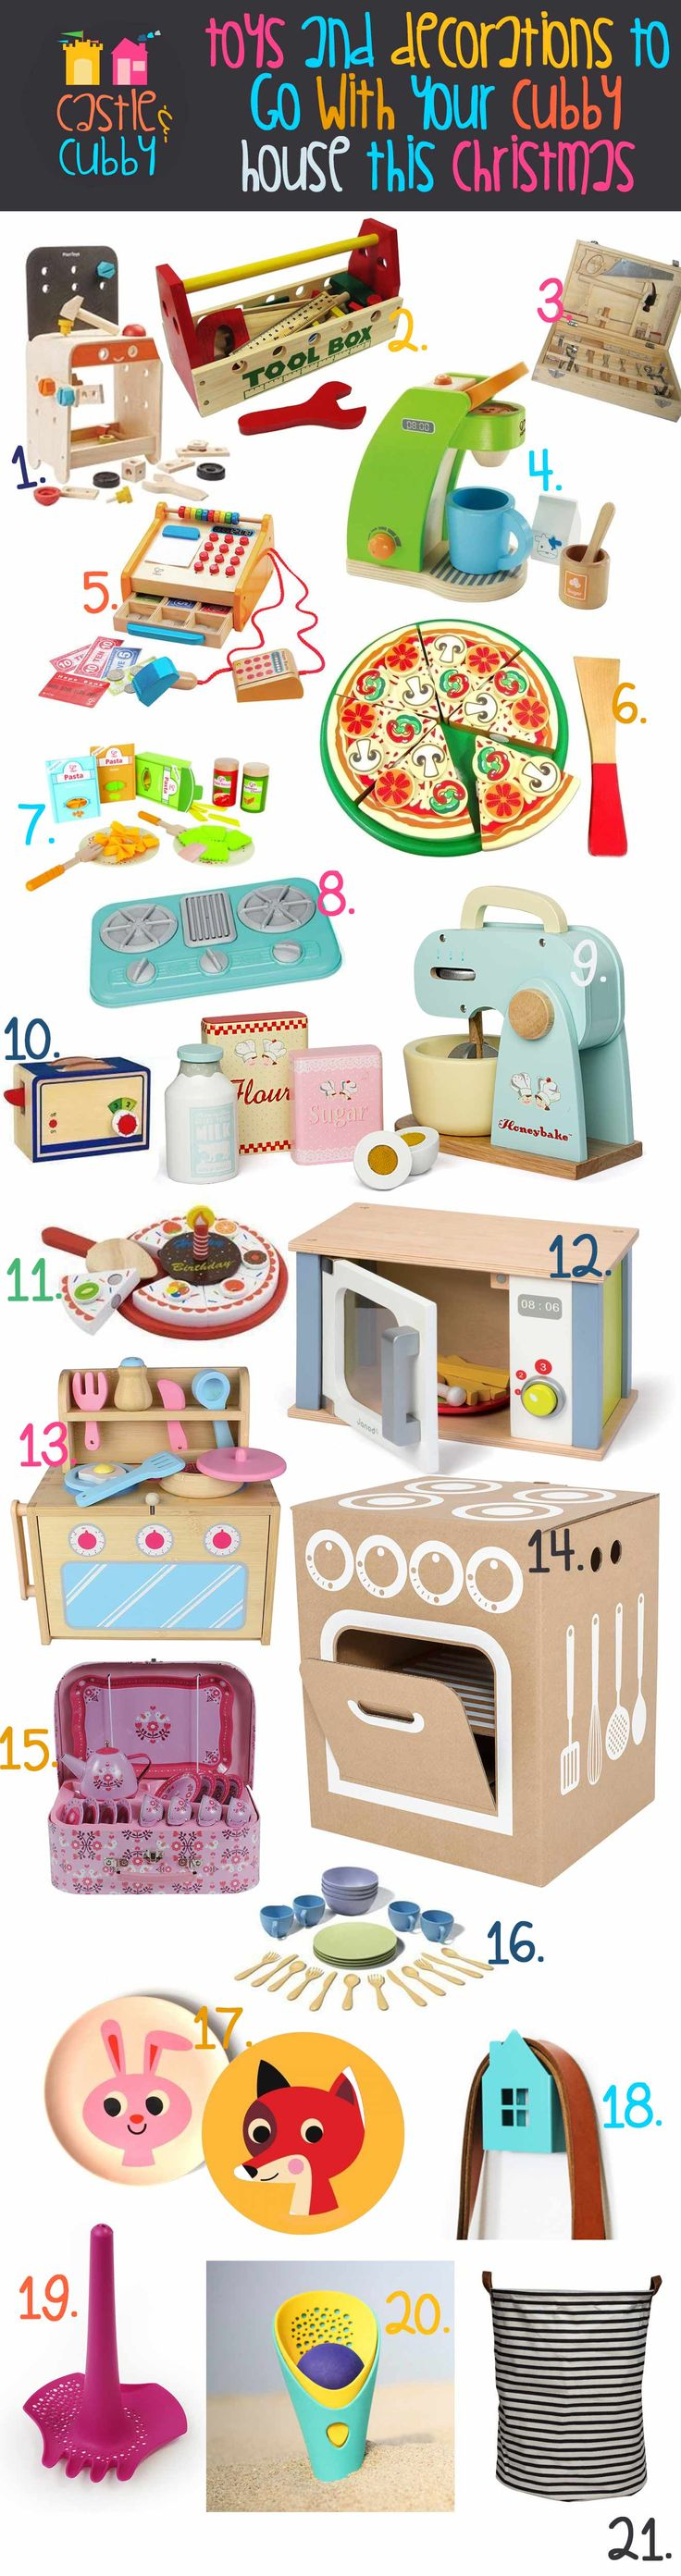 Best Toys to go with your Cubby House this 2015 Christmas